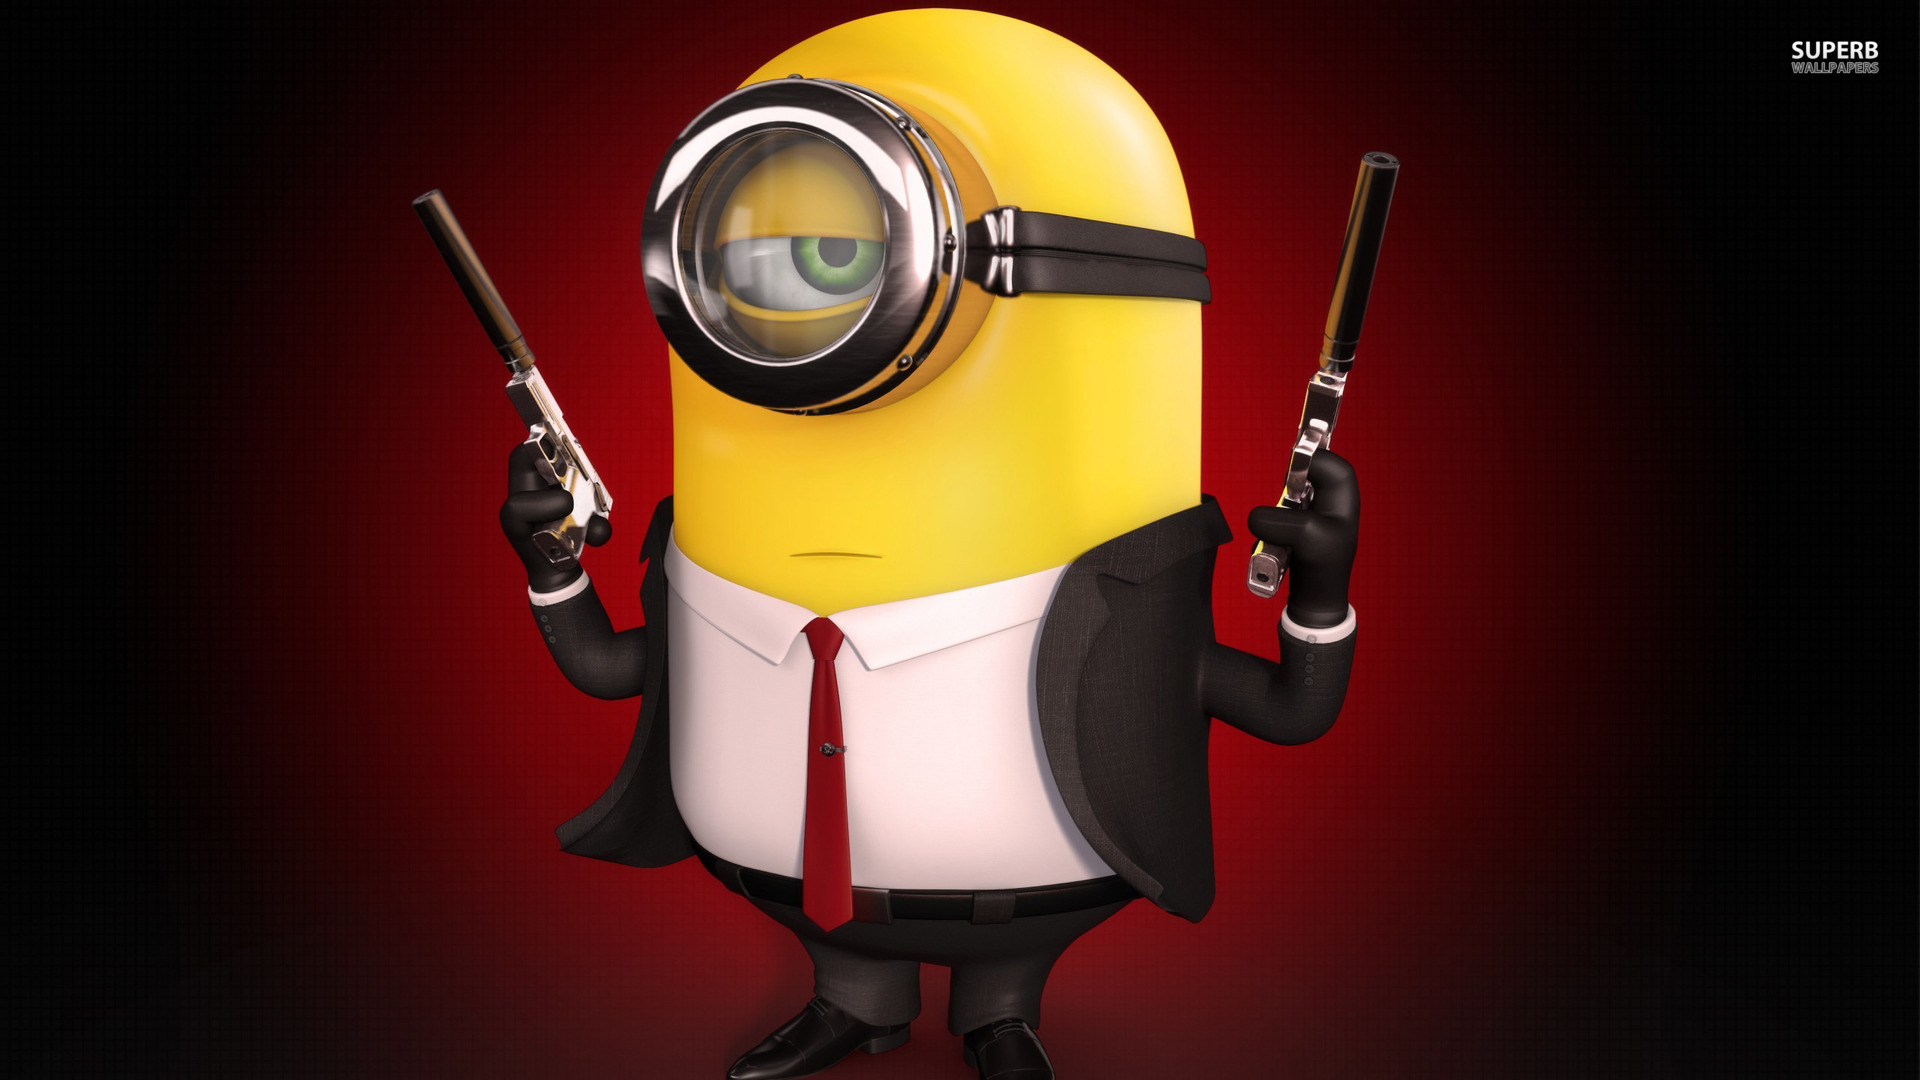 Hitman minion wallpaper 1920x1080